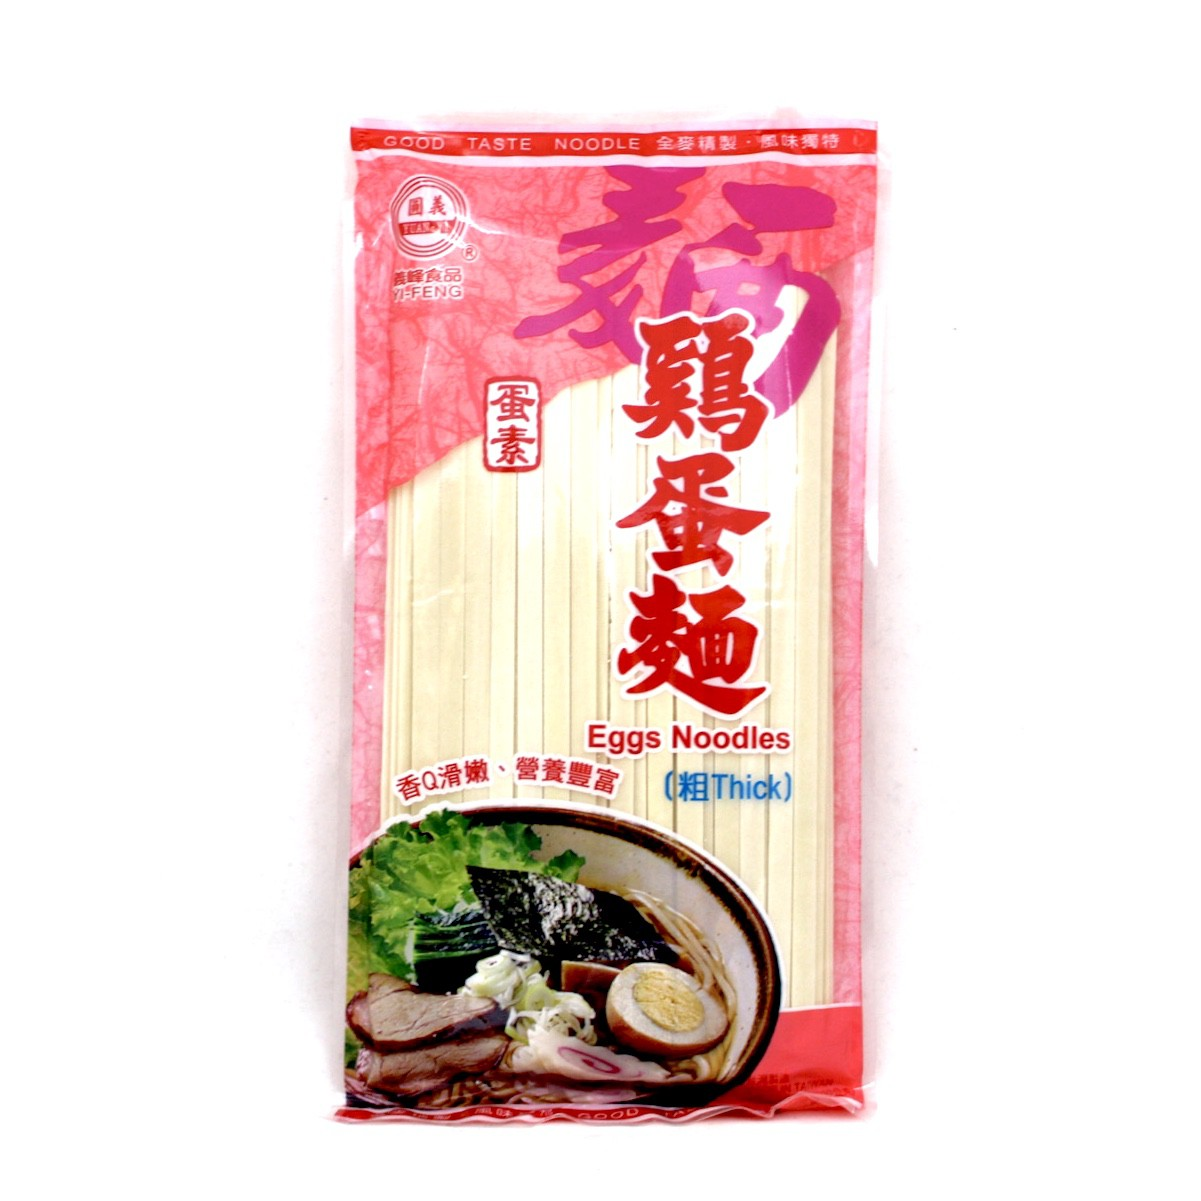 YI FENG EGGS NOODLE 300g (THICK)